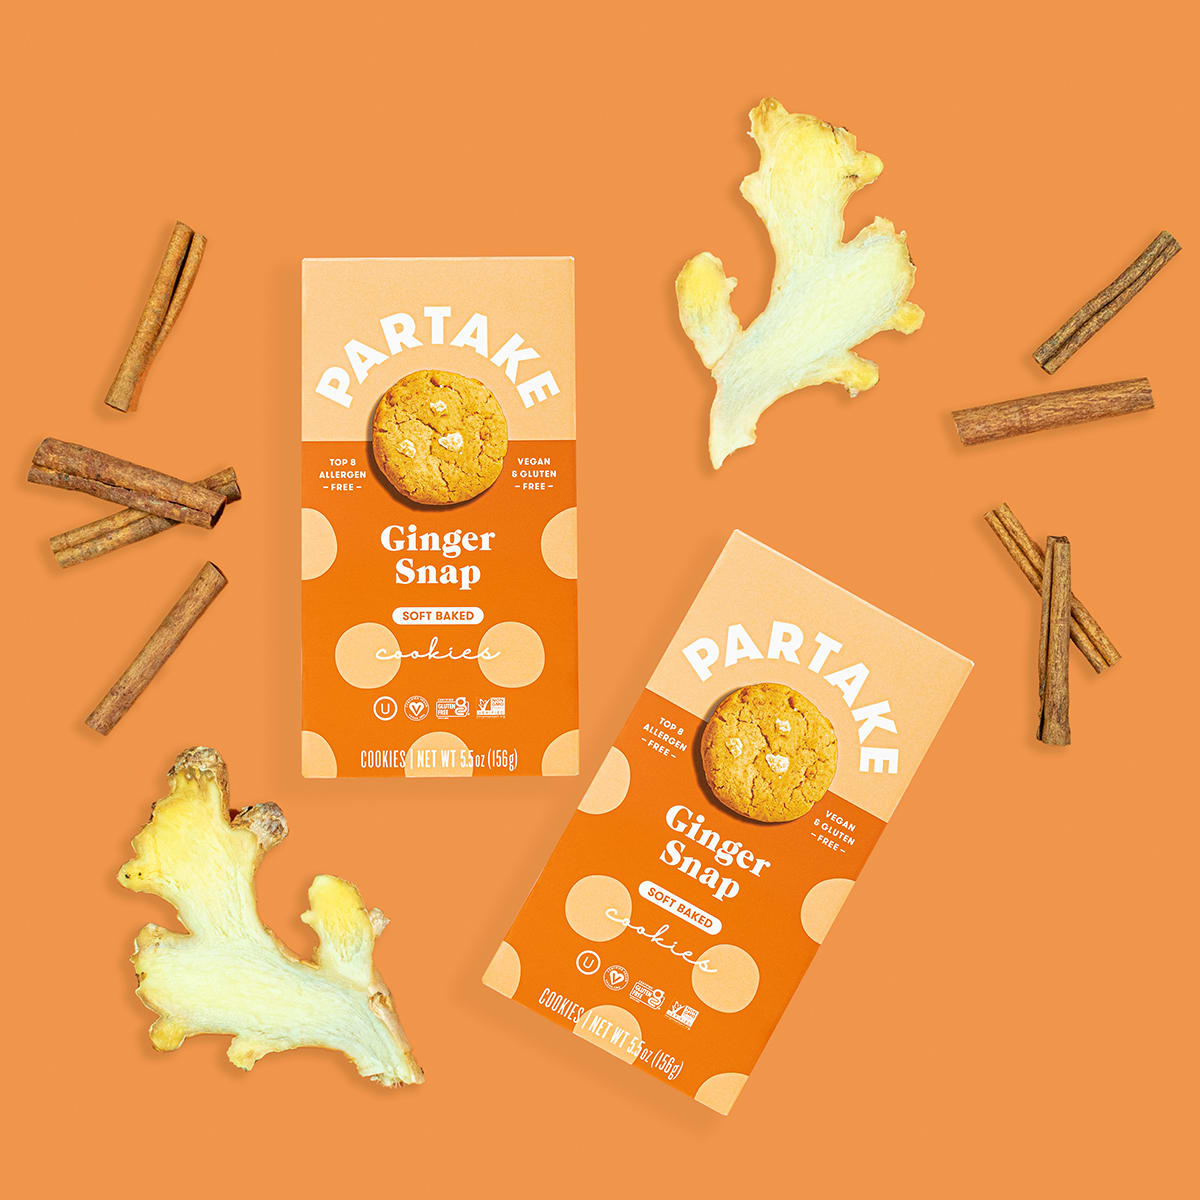 Partake Ginger Snap Soft Baked Cookies, lifestyle